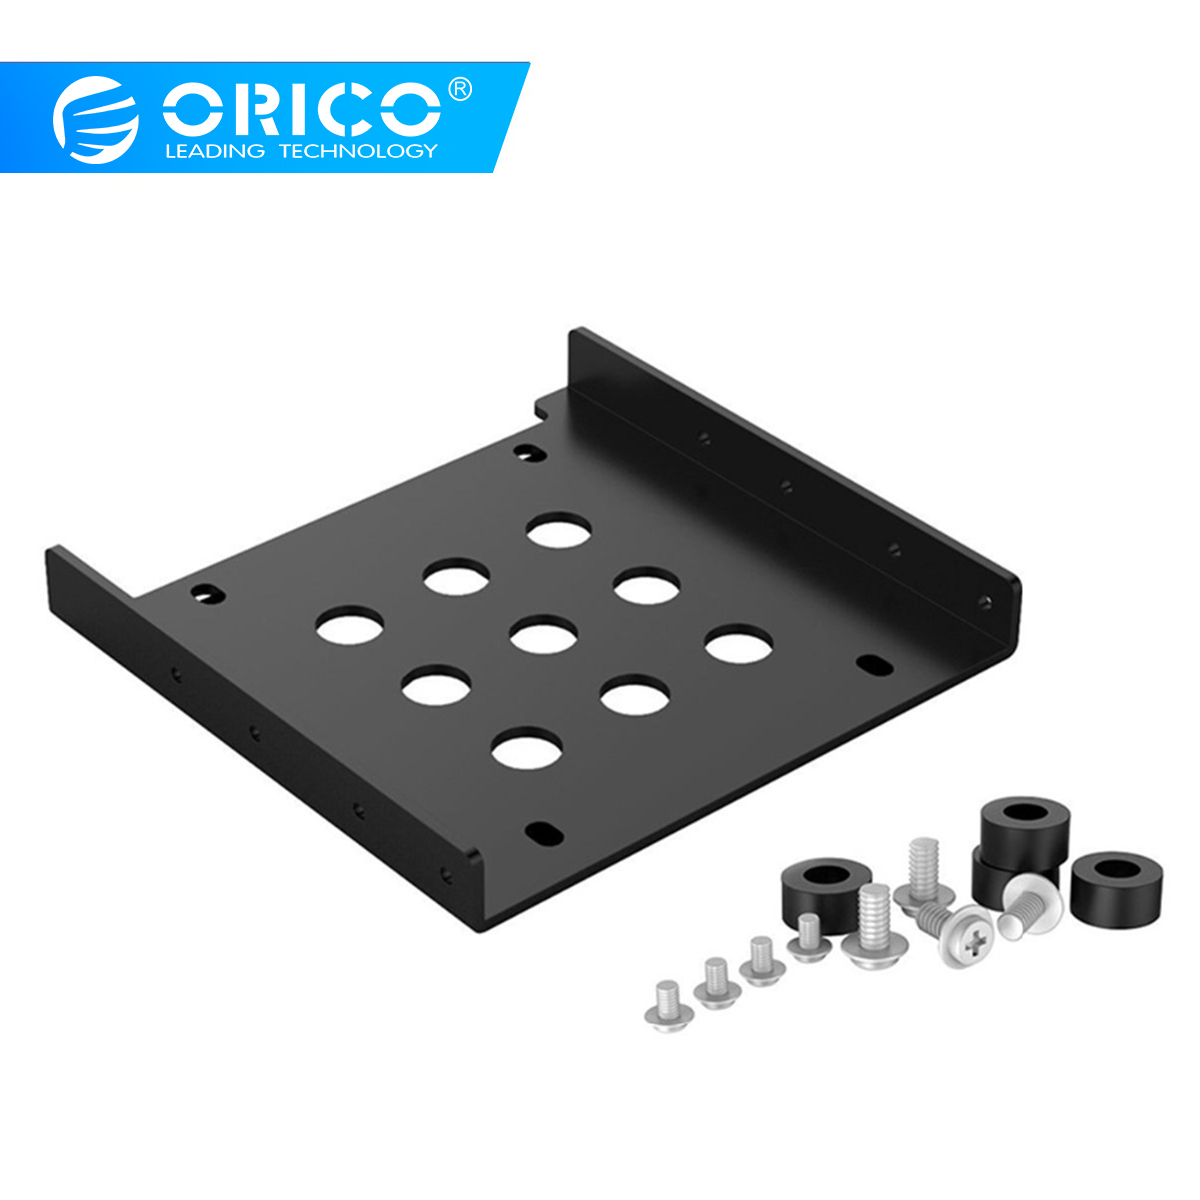 ORICO Aluminum 2.5'' To 3.5'' Hard Disk Drive Mounting Bracket Kit HDD SSD SATA Bay Converter HDD Mounting Dock Tray Adapter